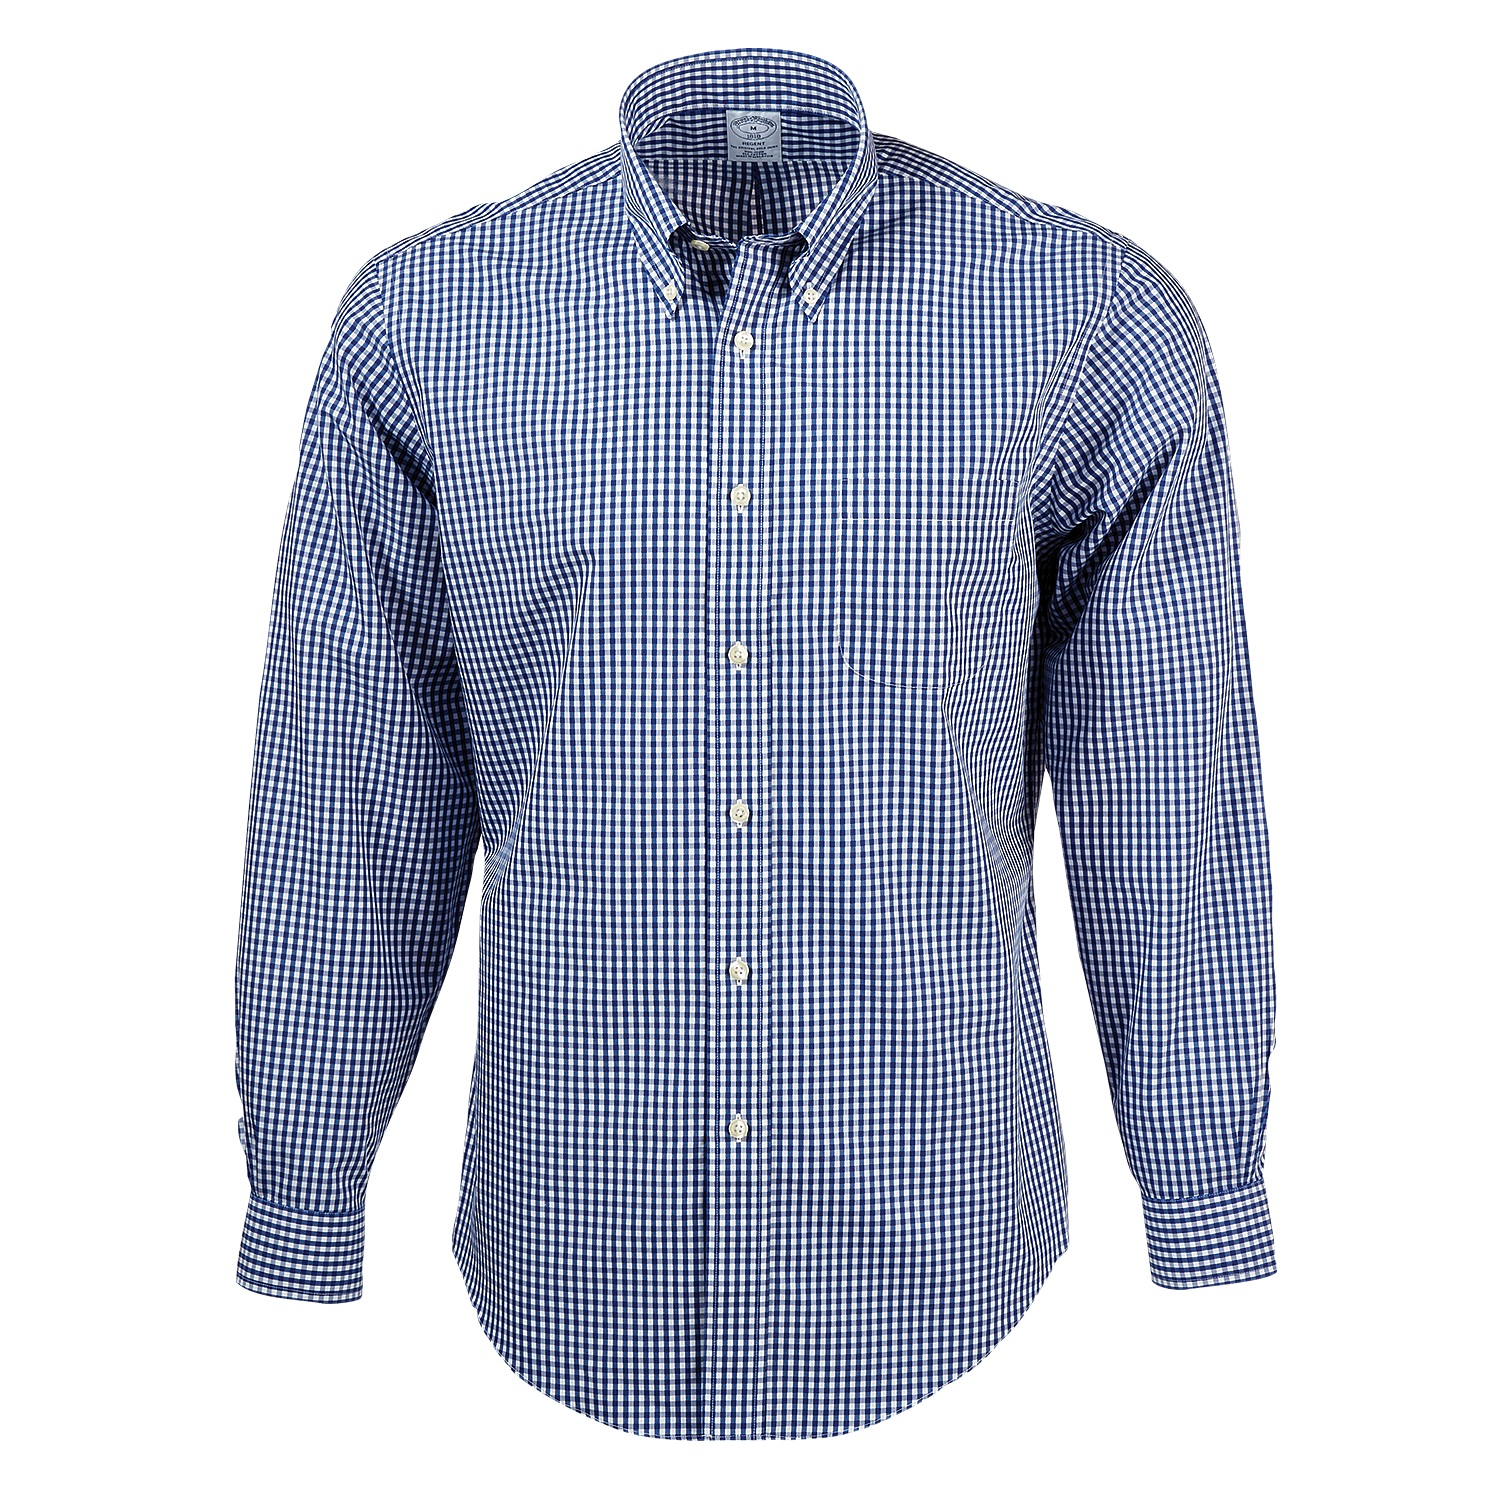 Brooks brothers br0731 men 39 s madison fit non iron for Brooks brothers non iron shirt review